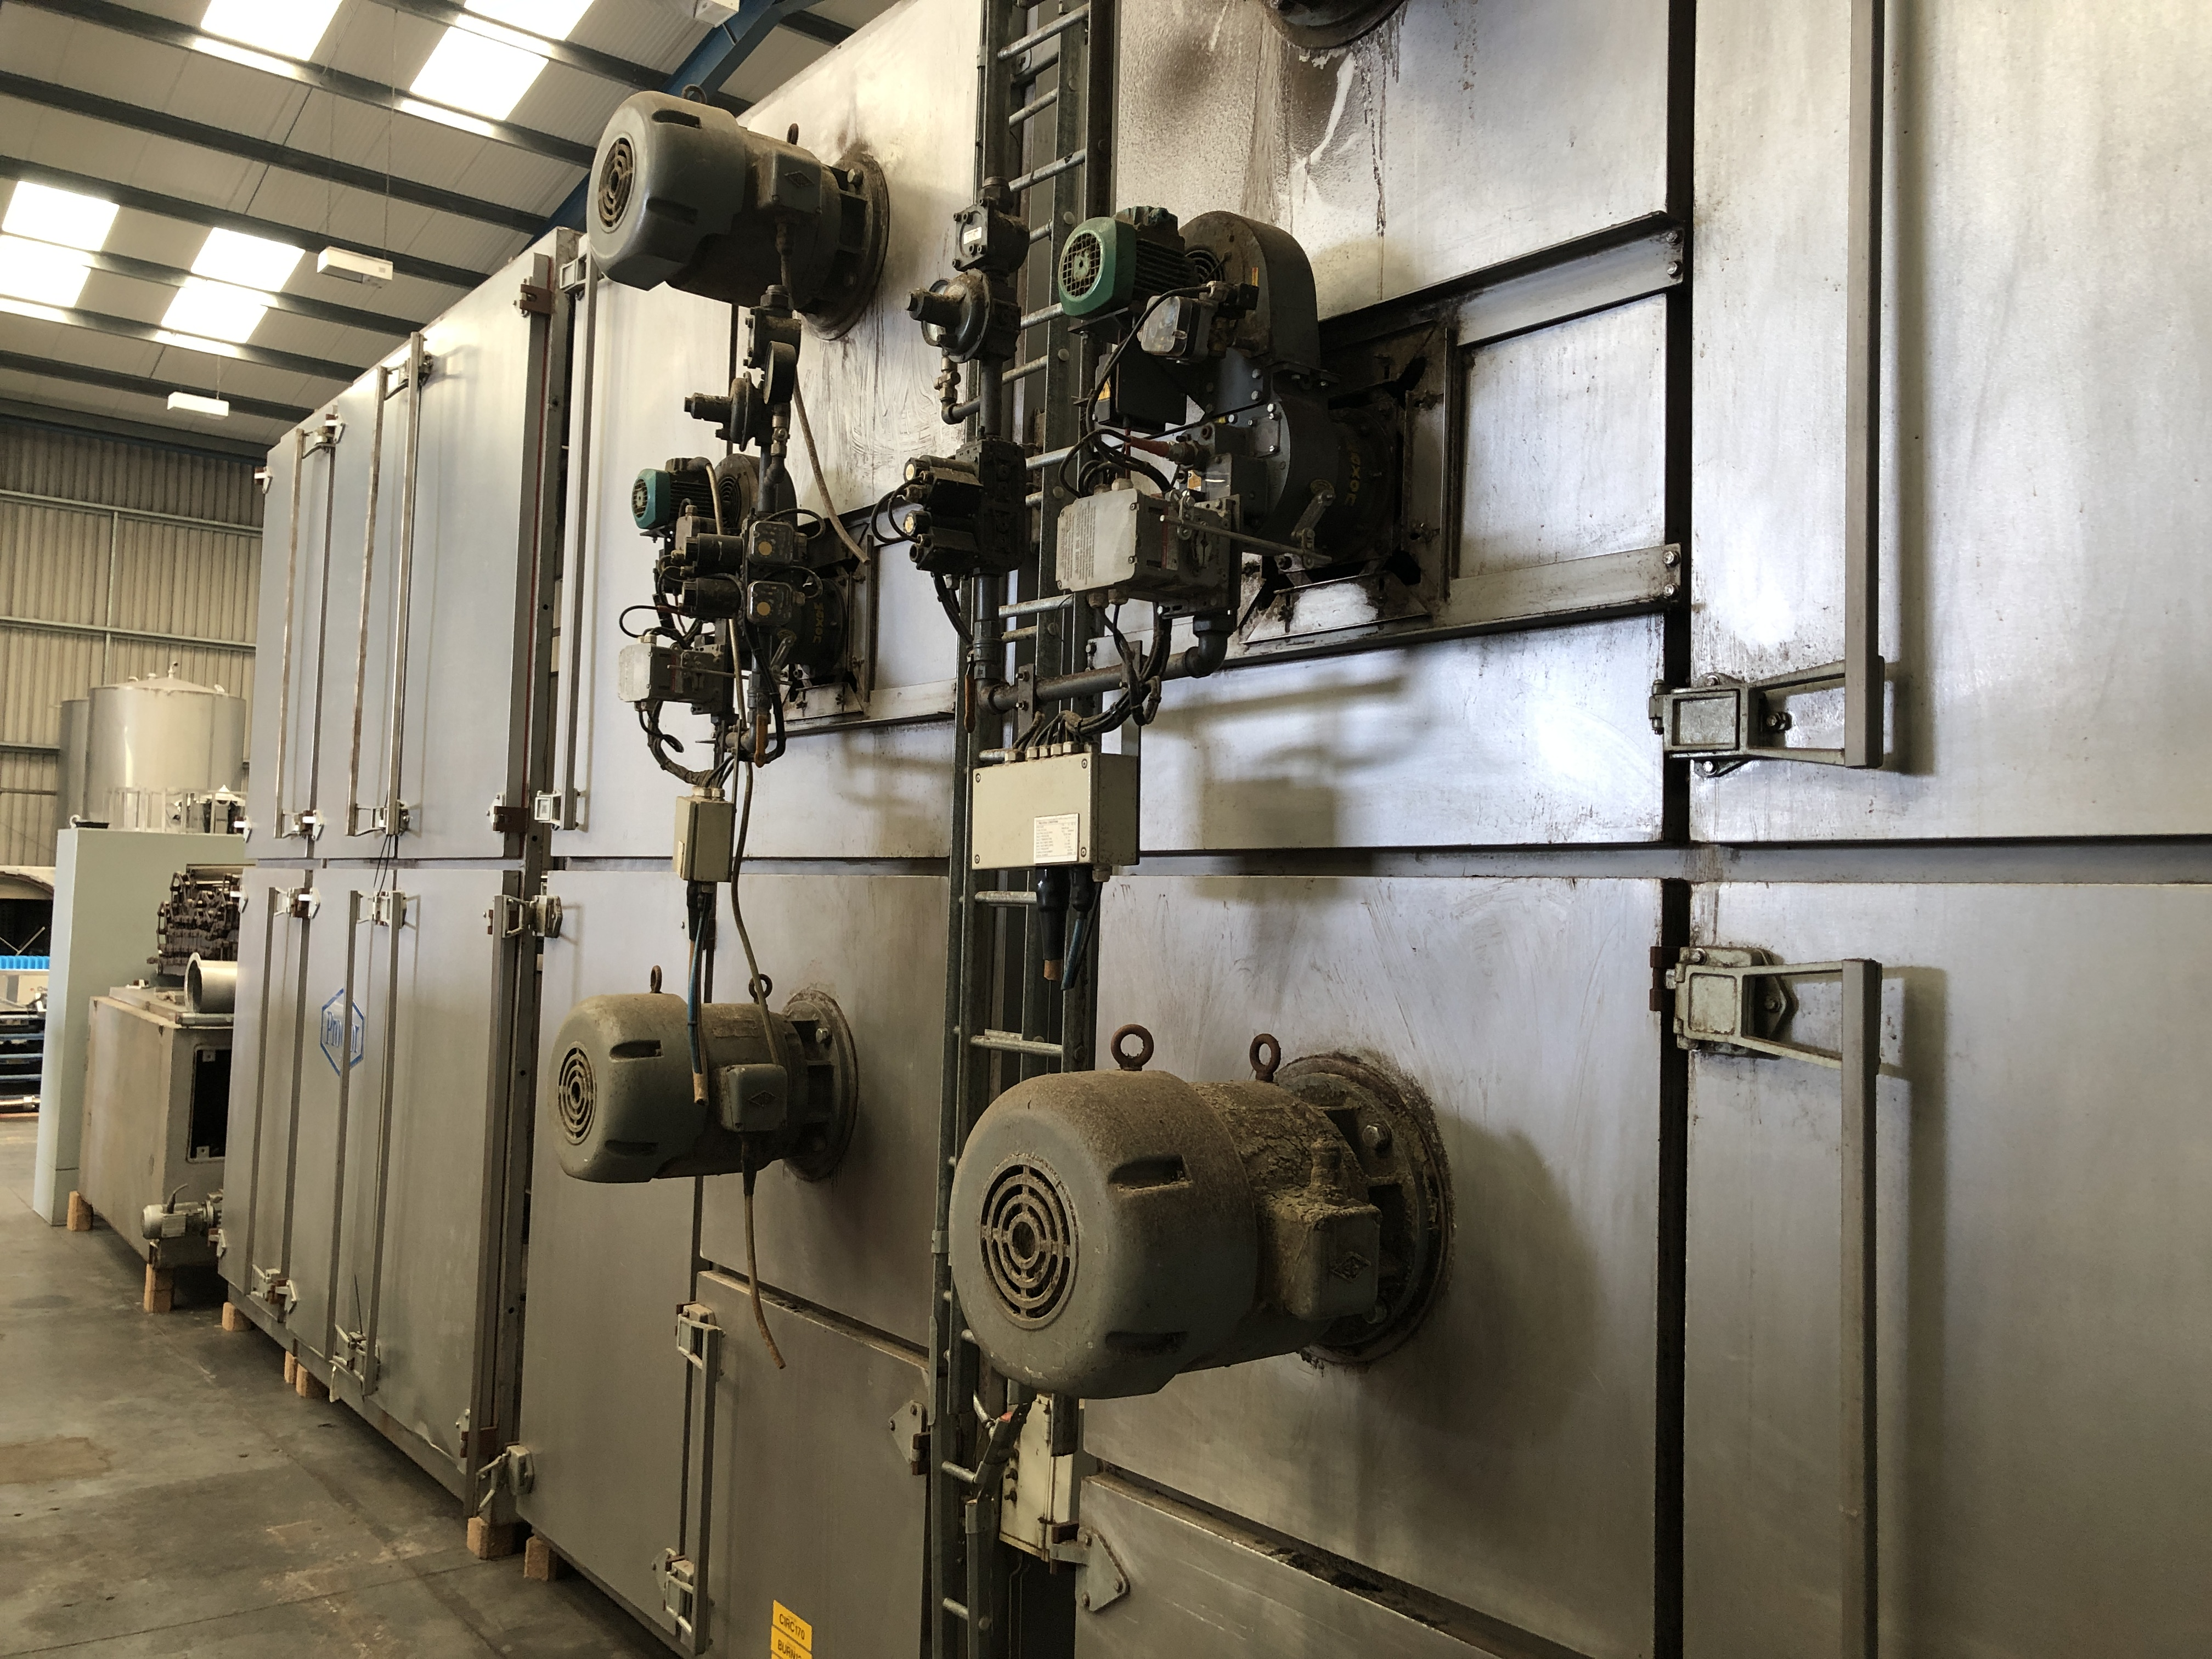 Proctor FIVE PASS GAS FIRED DRYER (dismantled by Blackrow Engineering), approx. 15m long x 5m wide x - Image 5 of 7